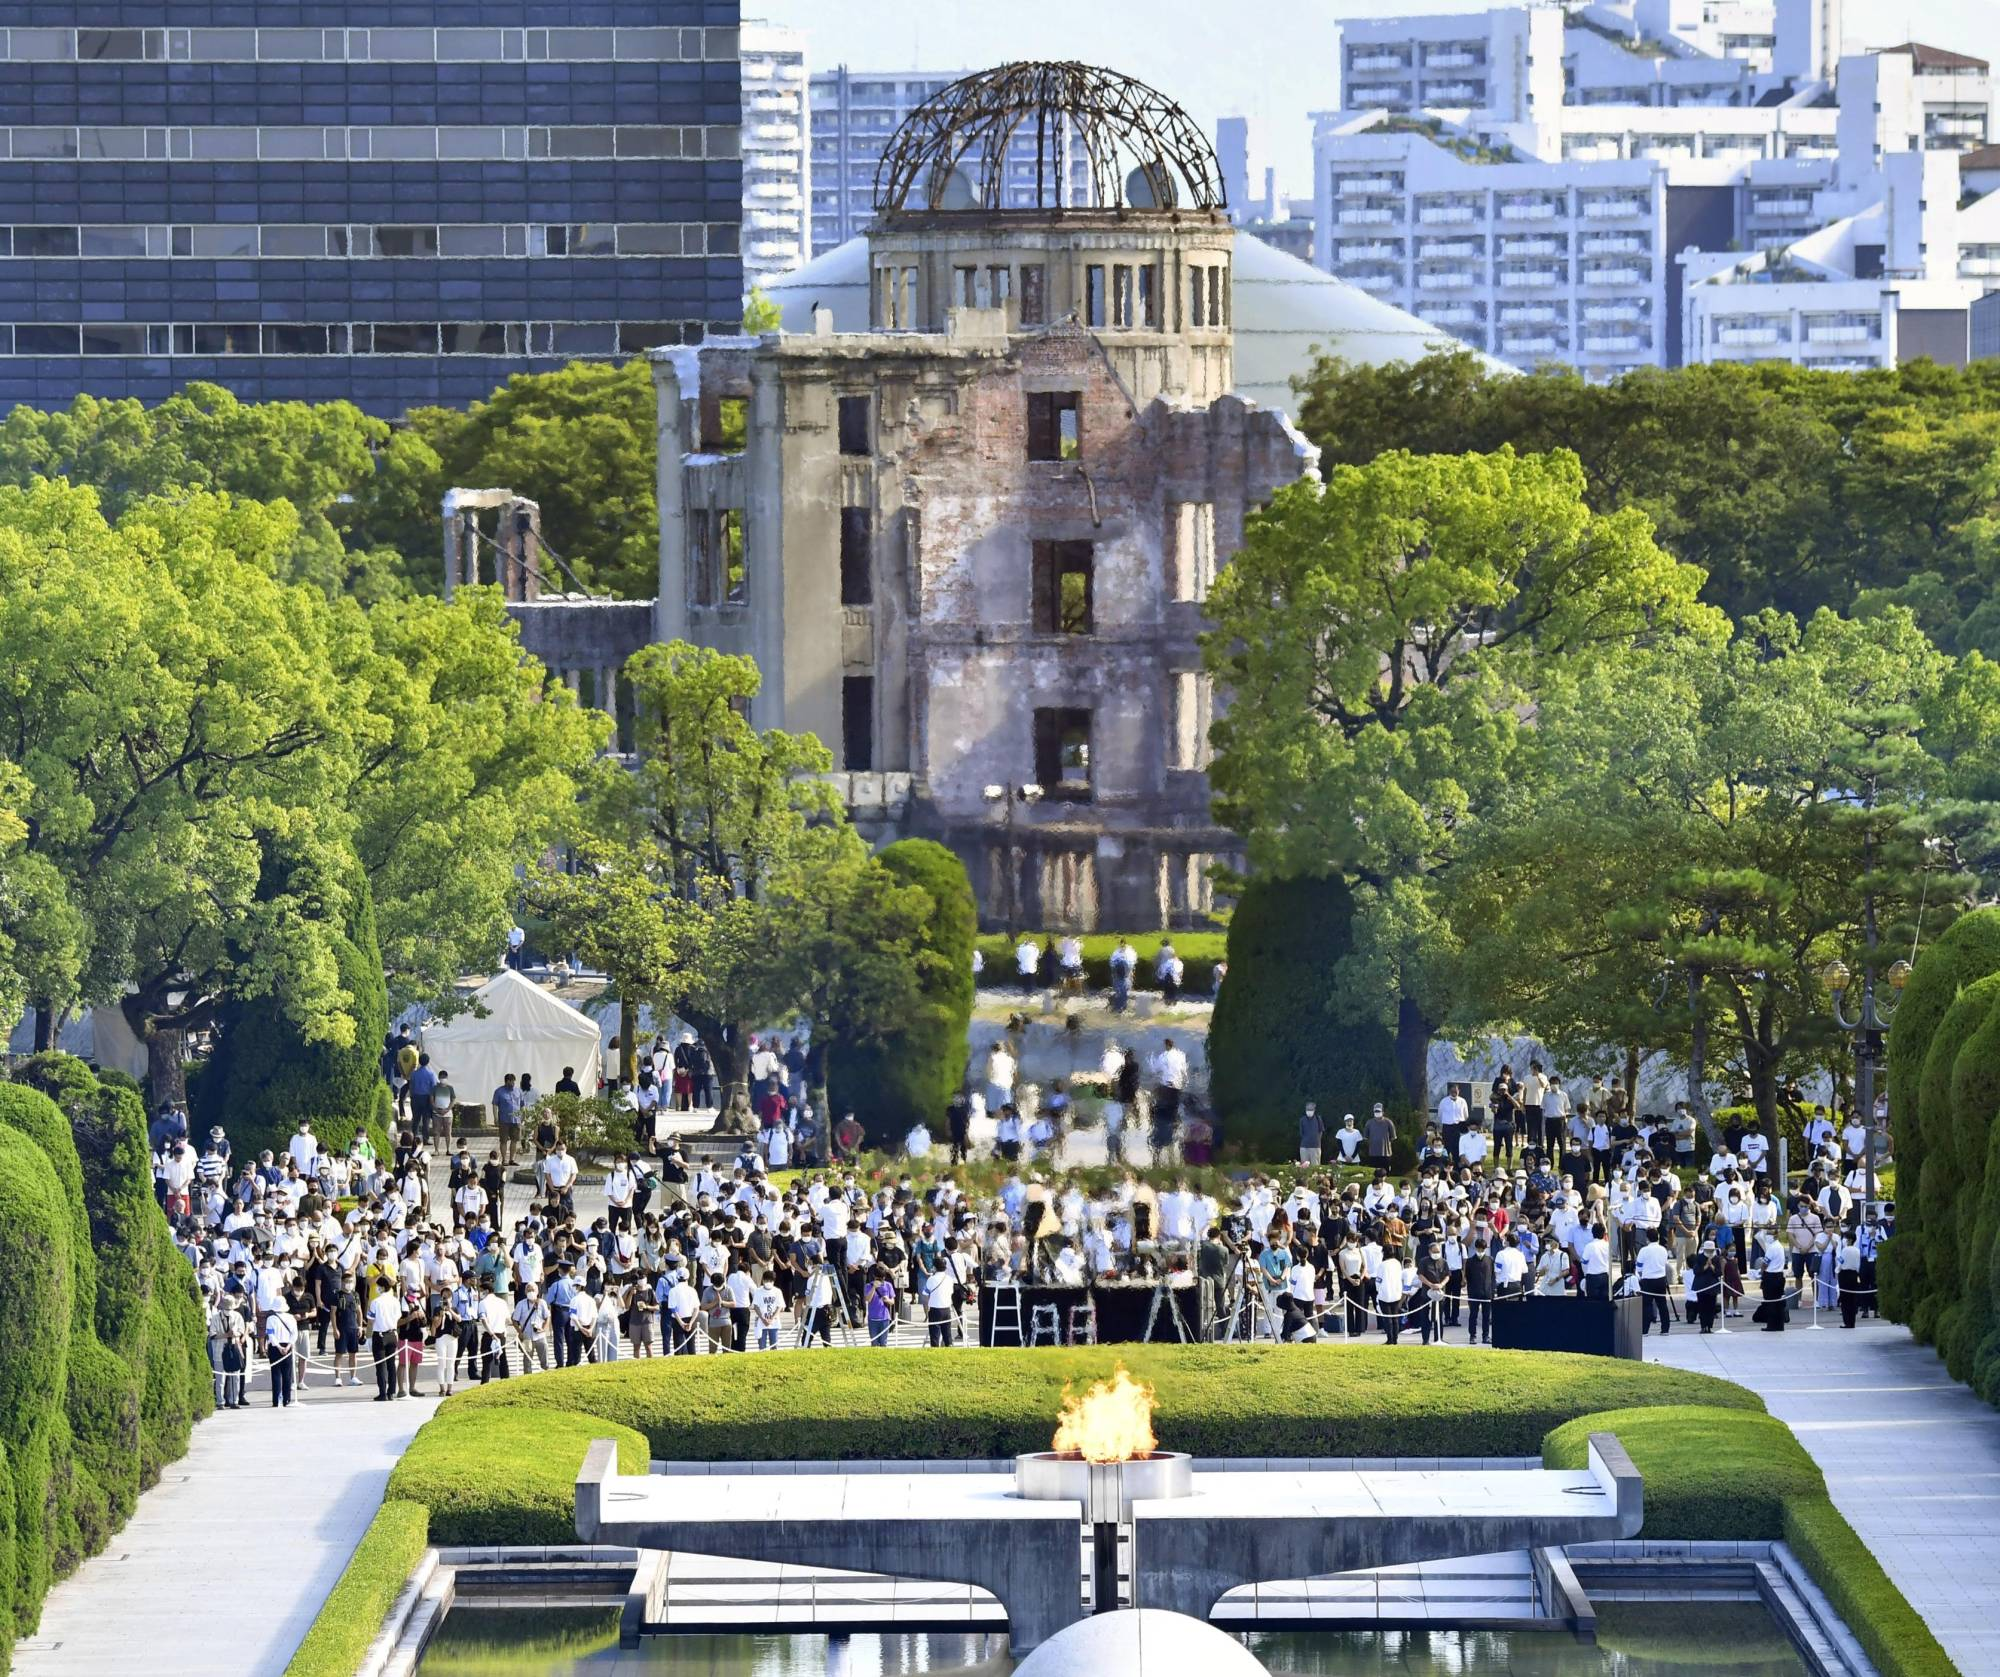 People observe a moment of silence at 8:15 a.m., the time when an atomic bomb was dropped on Hiroshima 76 years ago, at the Peace Memorial Park on Friday.   KYODO